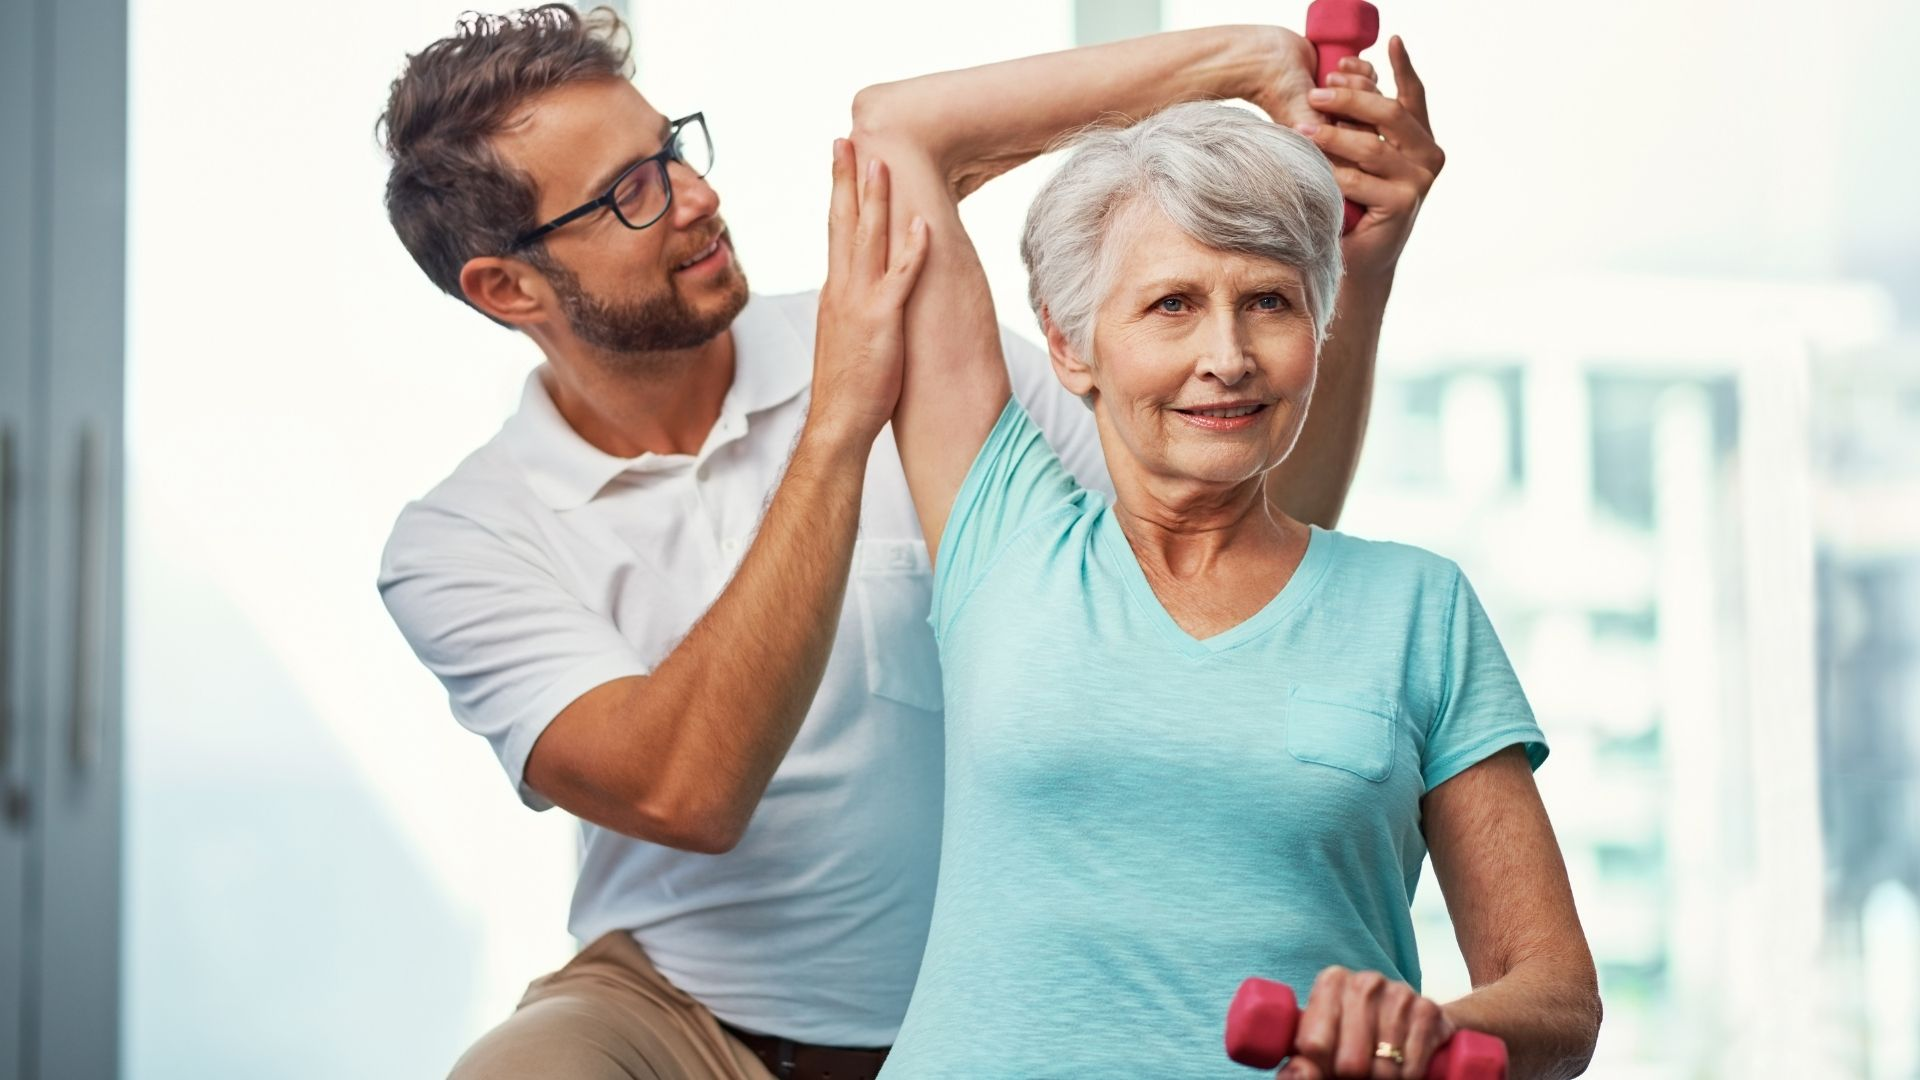 physiotherapy supports healthy aging Propel Physiotherapy